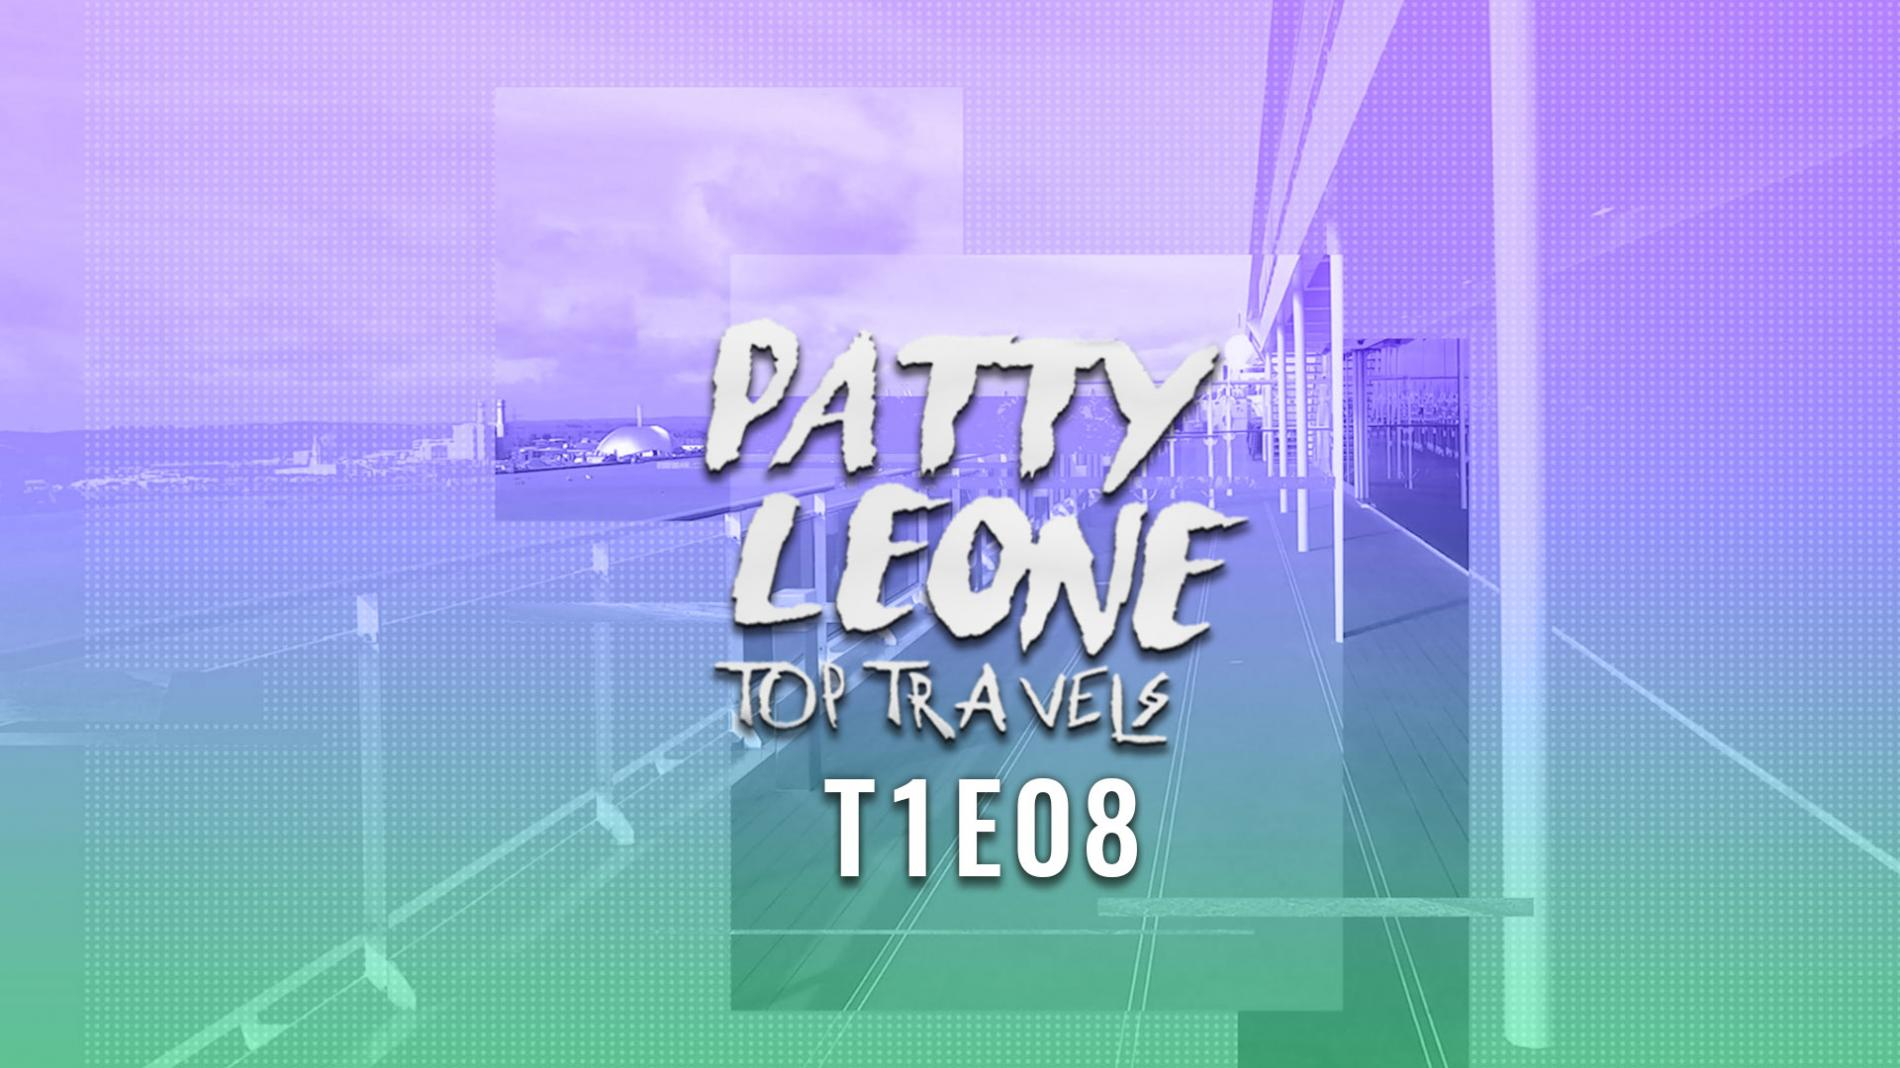 Patty Leone Top Travels - Temporada T01 - Episódio E08